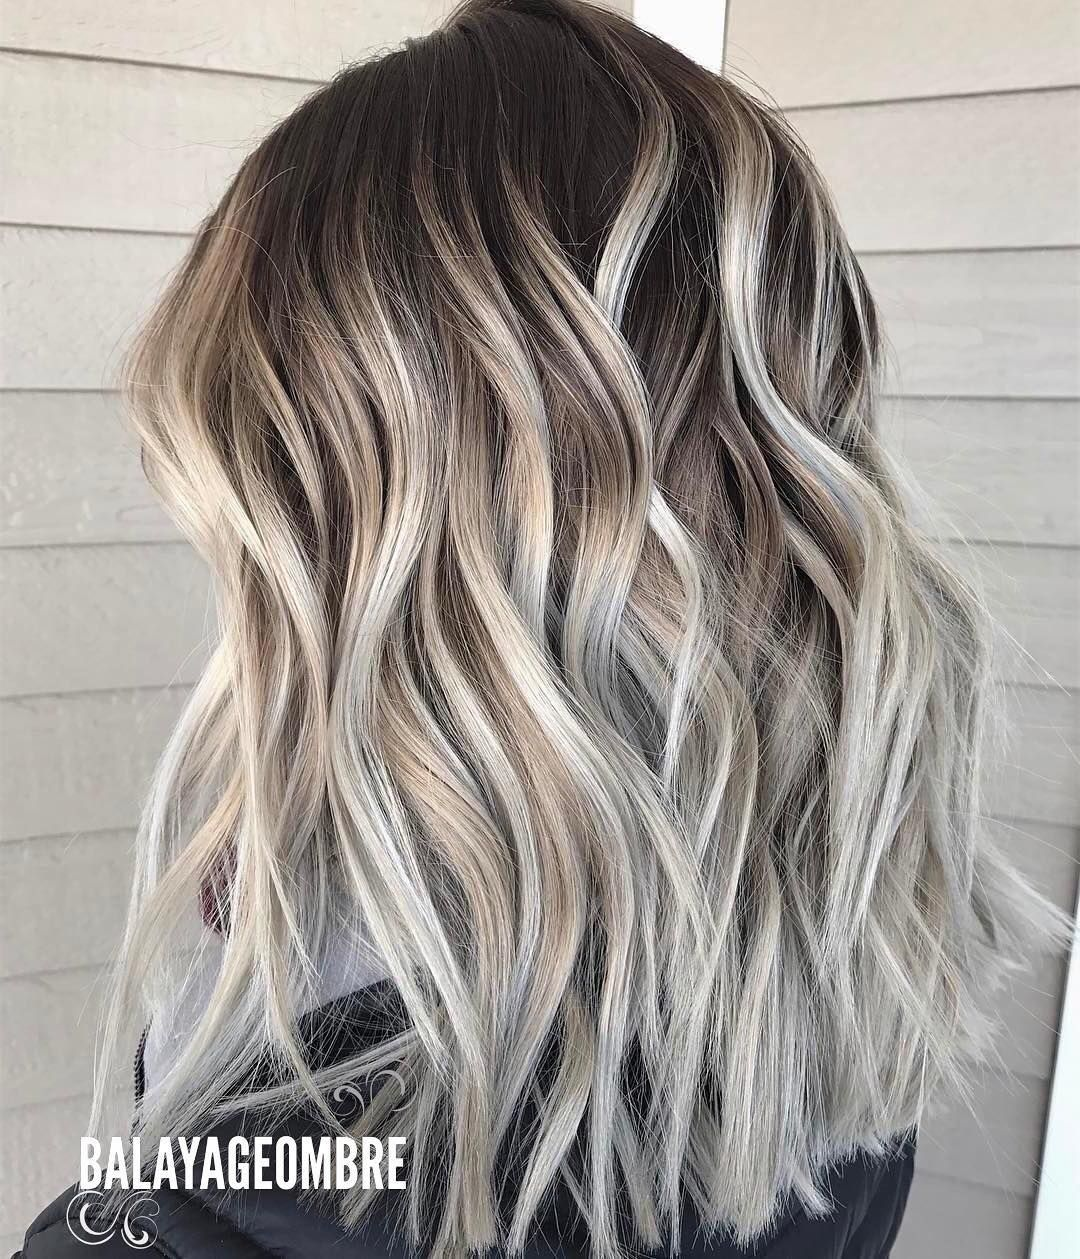 10 Best Medium Layered Hairstyles 2018 Brown Ash Blonde Fashion